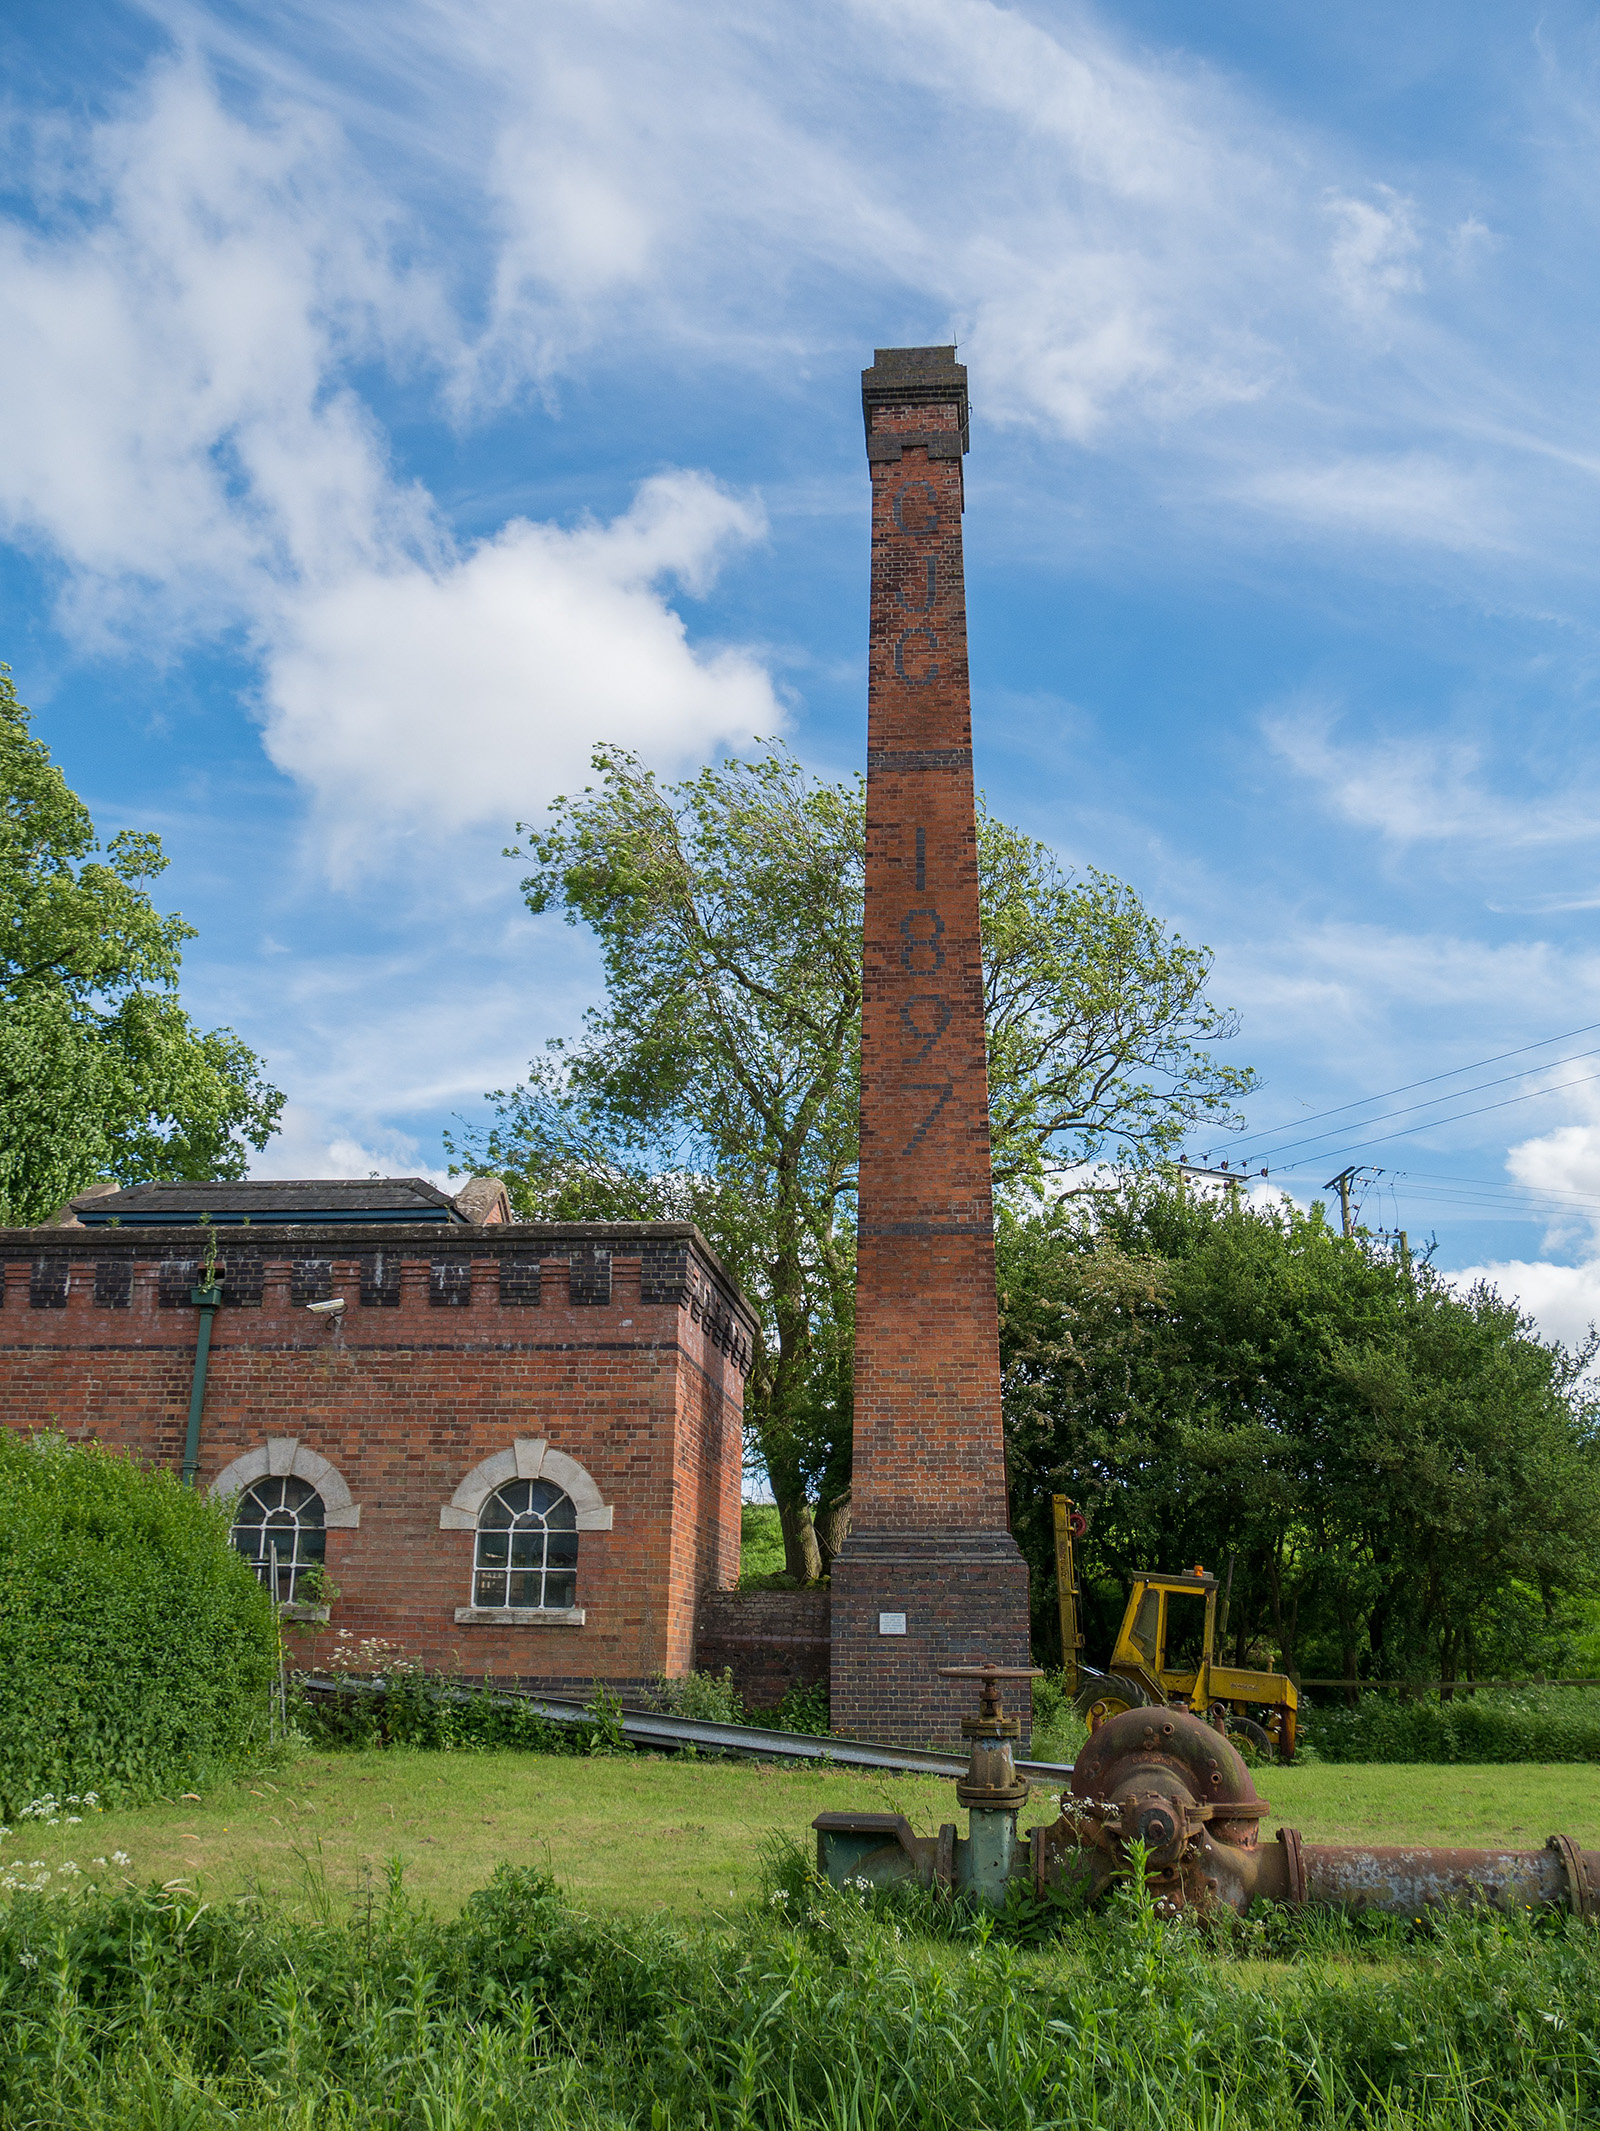 1897 chimney hints at the industrial heritage of this area